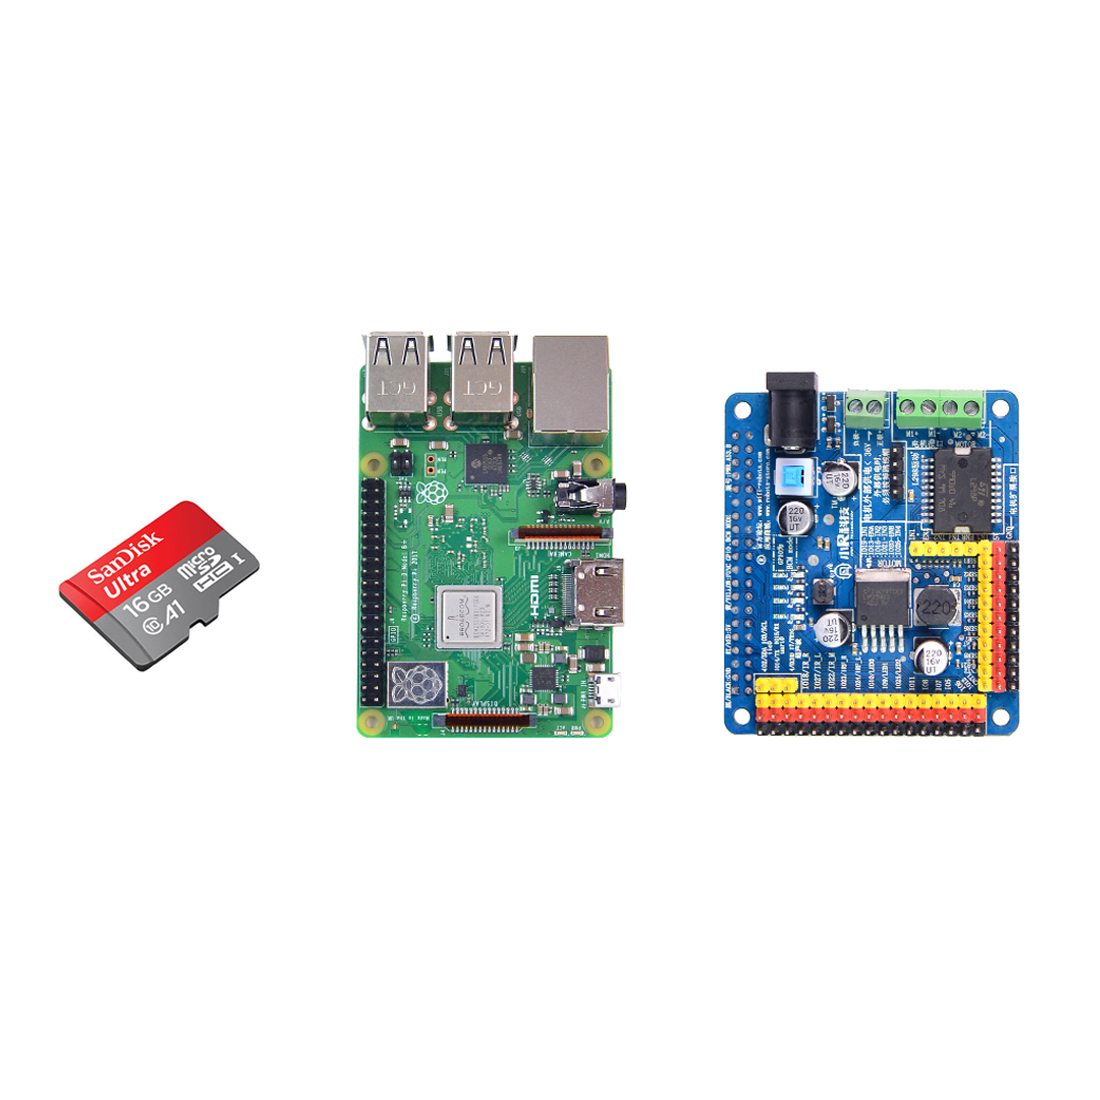 2GB RAM Raspberry PI Development Board With Expansion Board And 16GB Memory Card Model Educational Toy Gift For Child Kid Adult